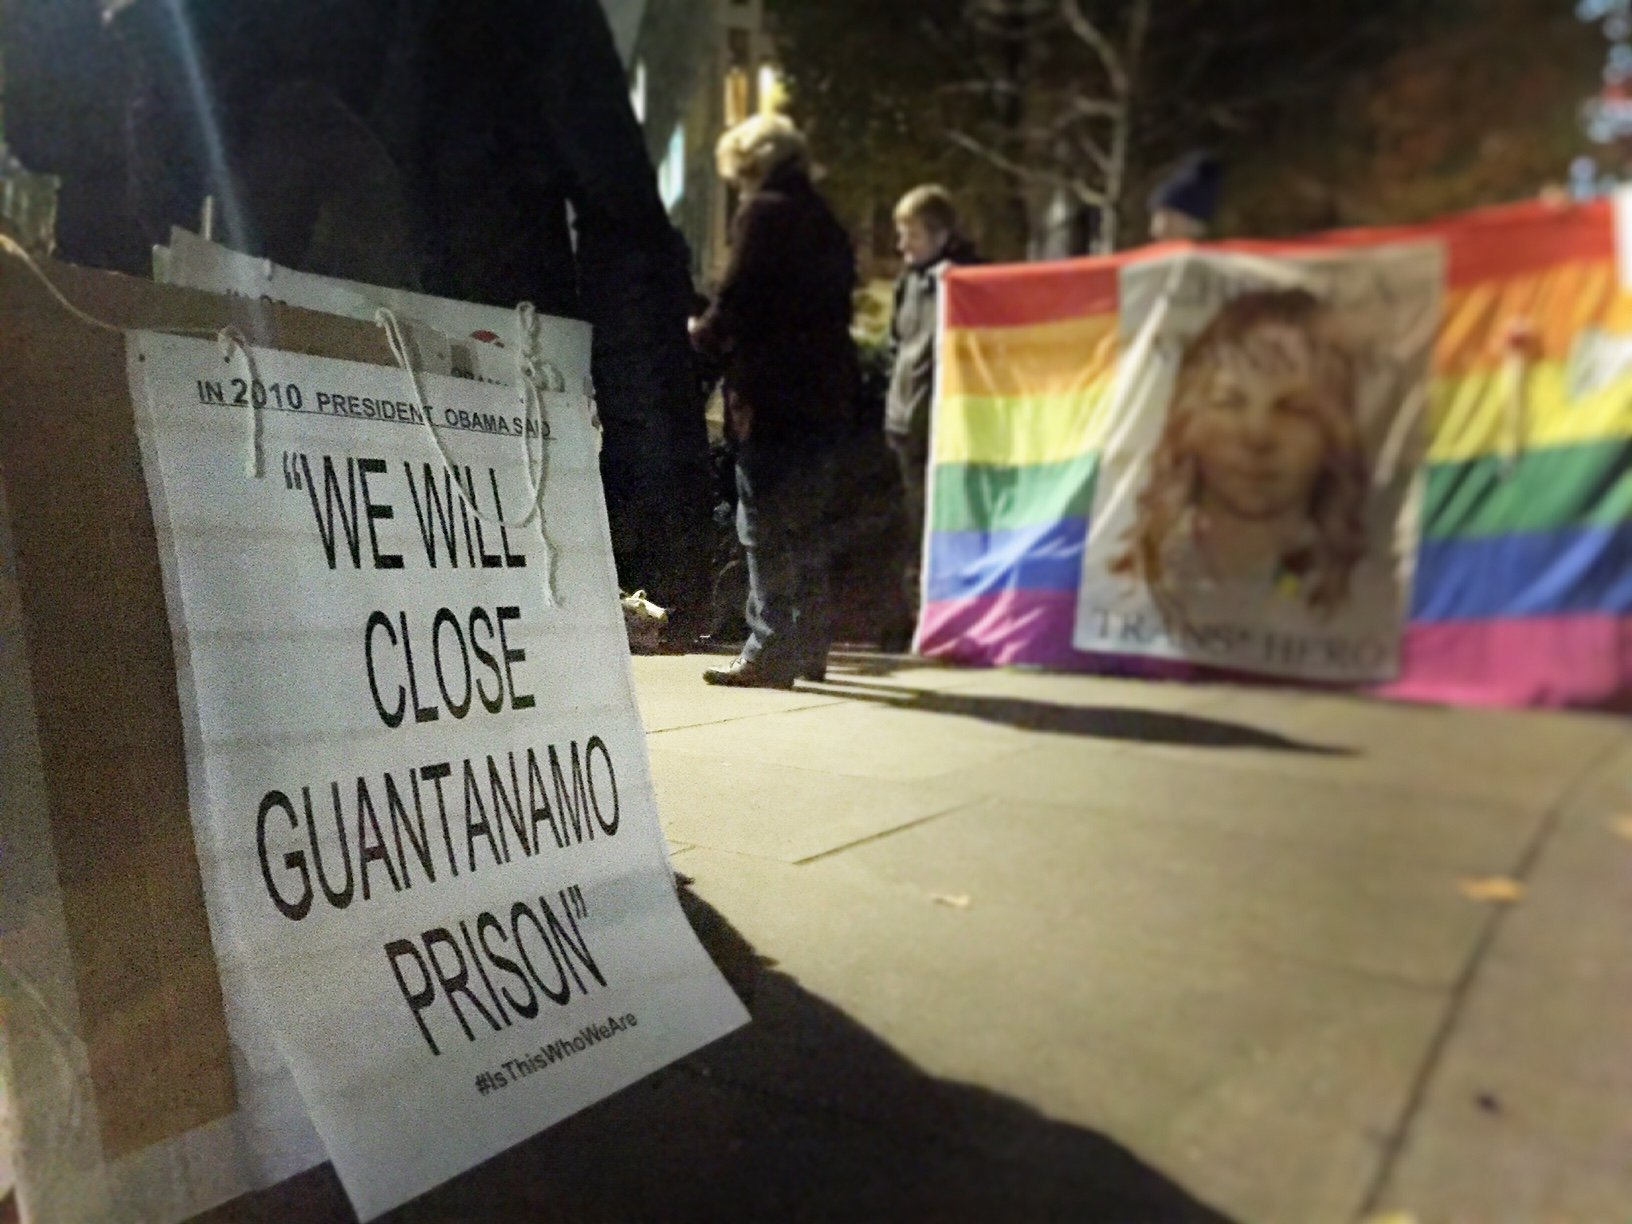 Demonstration held at US Embassy London on night of Elections Vote